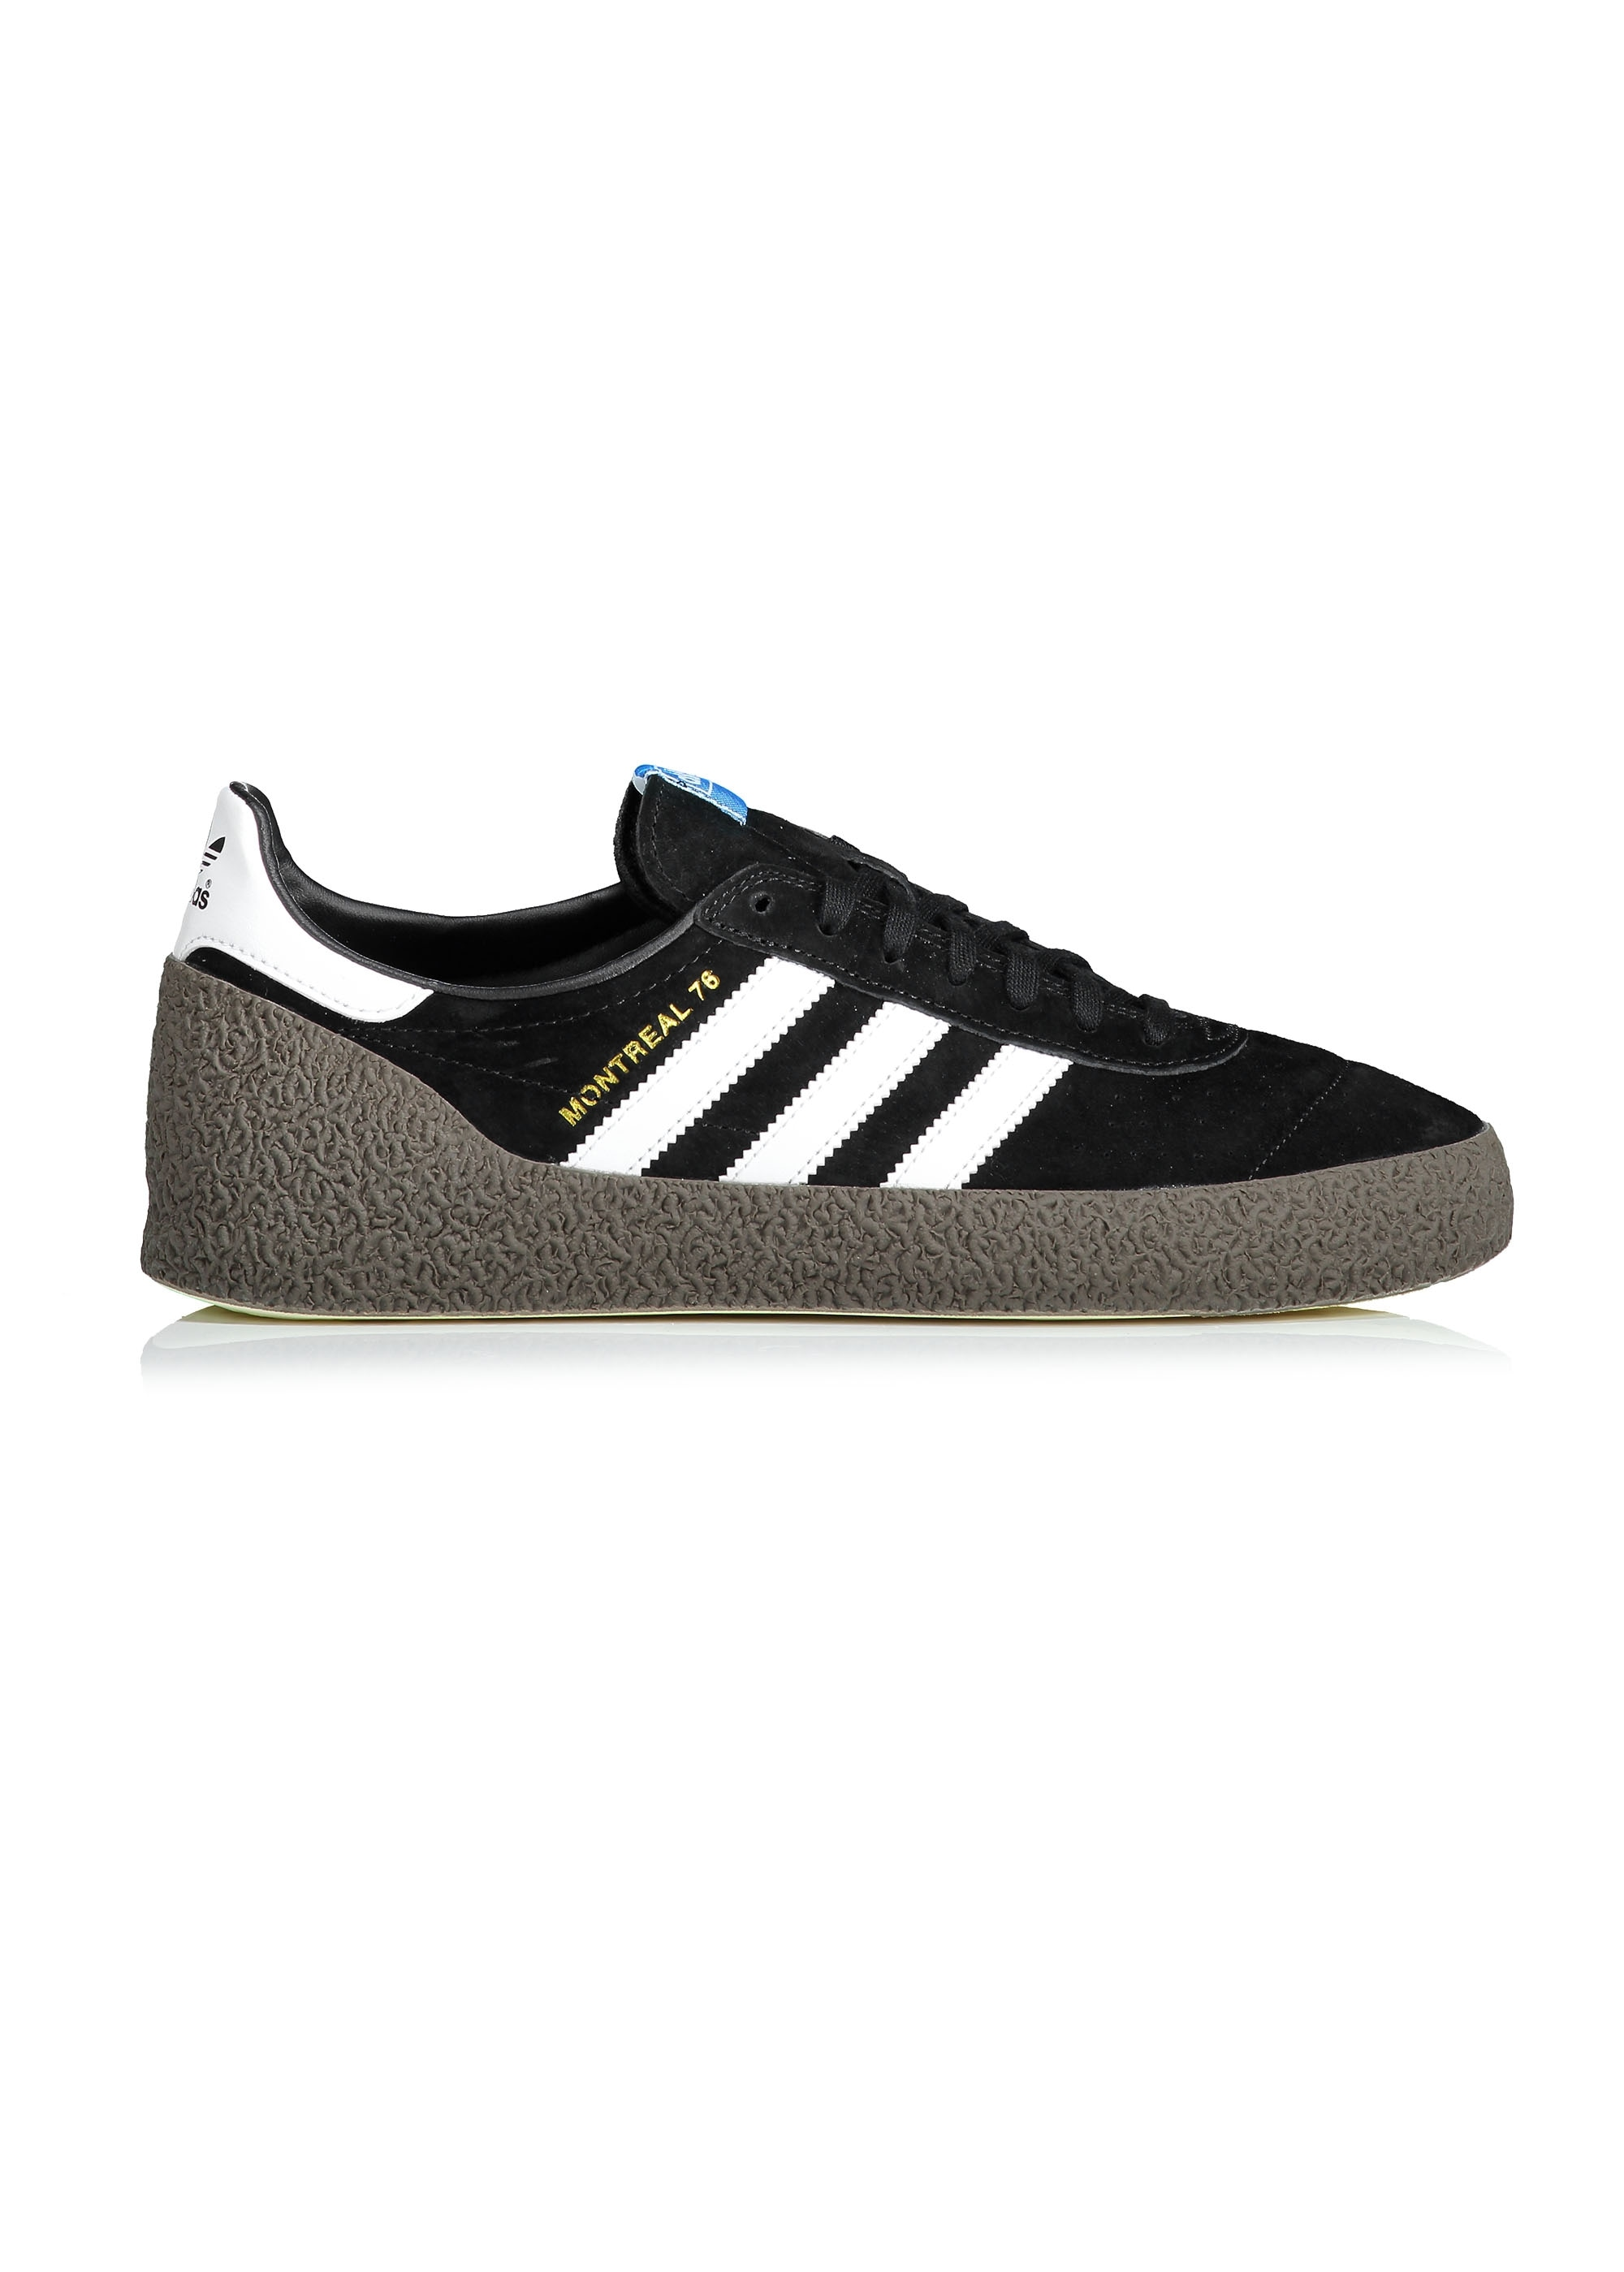 demasiado Aclarar Estadio  adidas Originals Footwear Montreal 76 - Black - Triads Mens from Triads UK